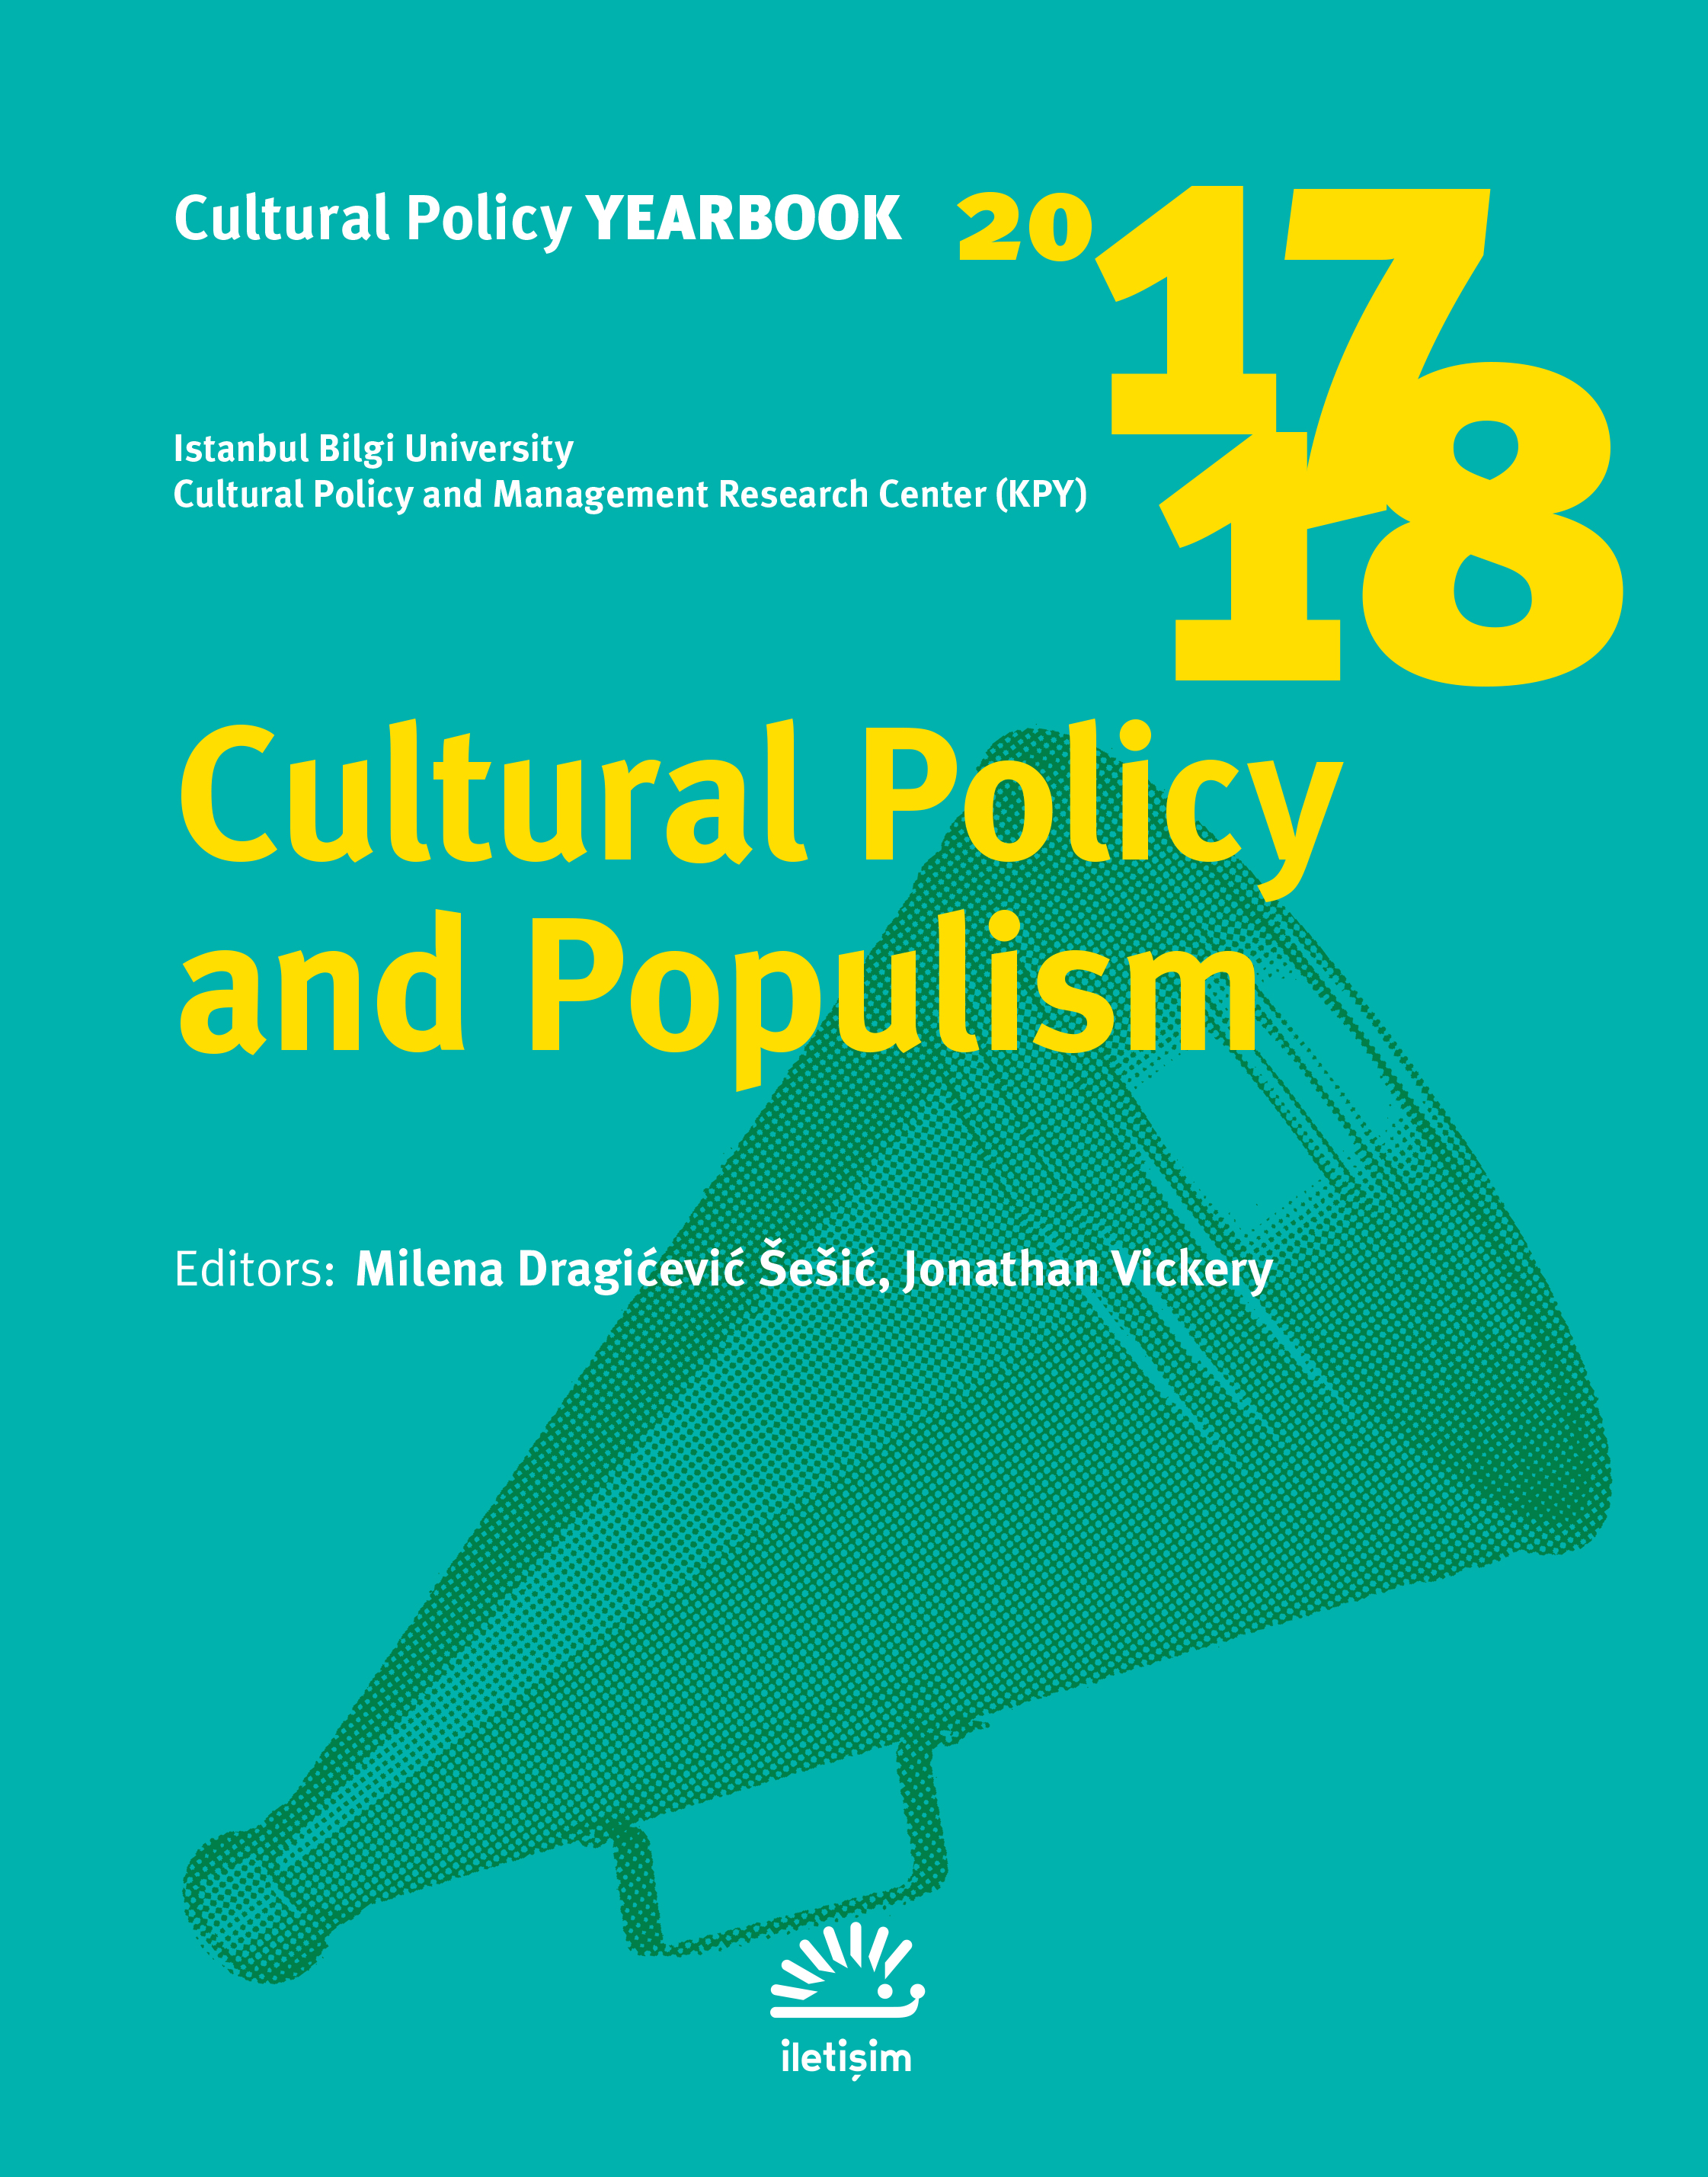 Cultural Policy and Populism Yearbook 2017 2018